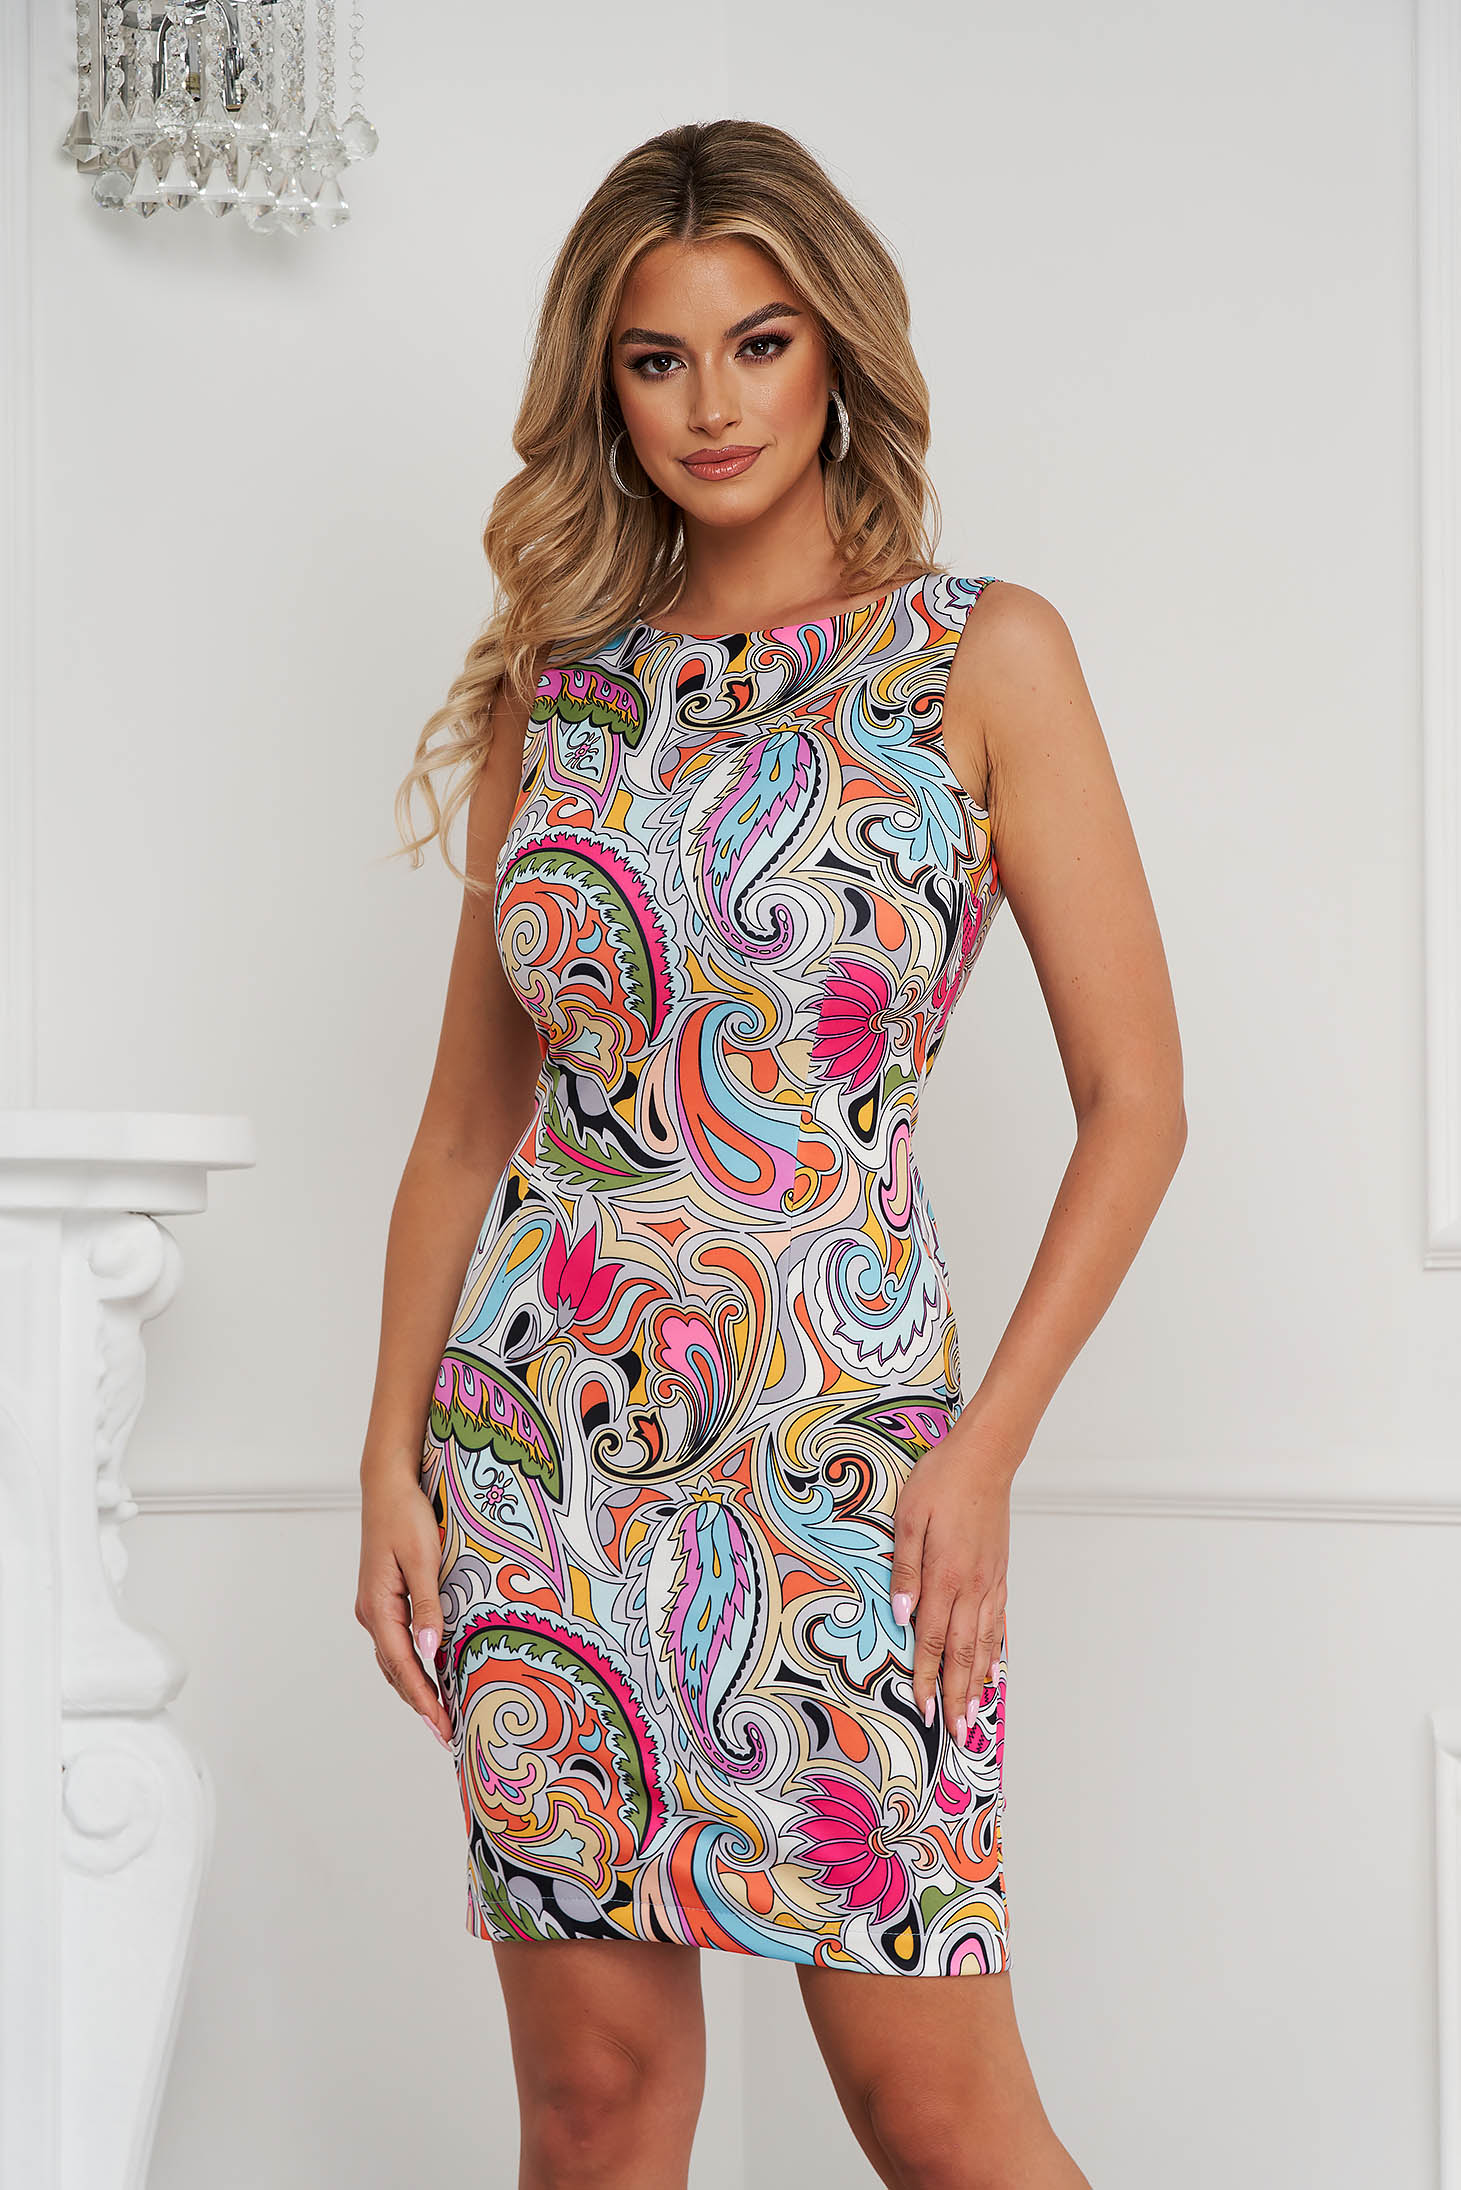 StarShinerS dress office short cut pencil sleeveless thin fabric with graphic details